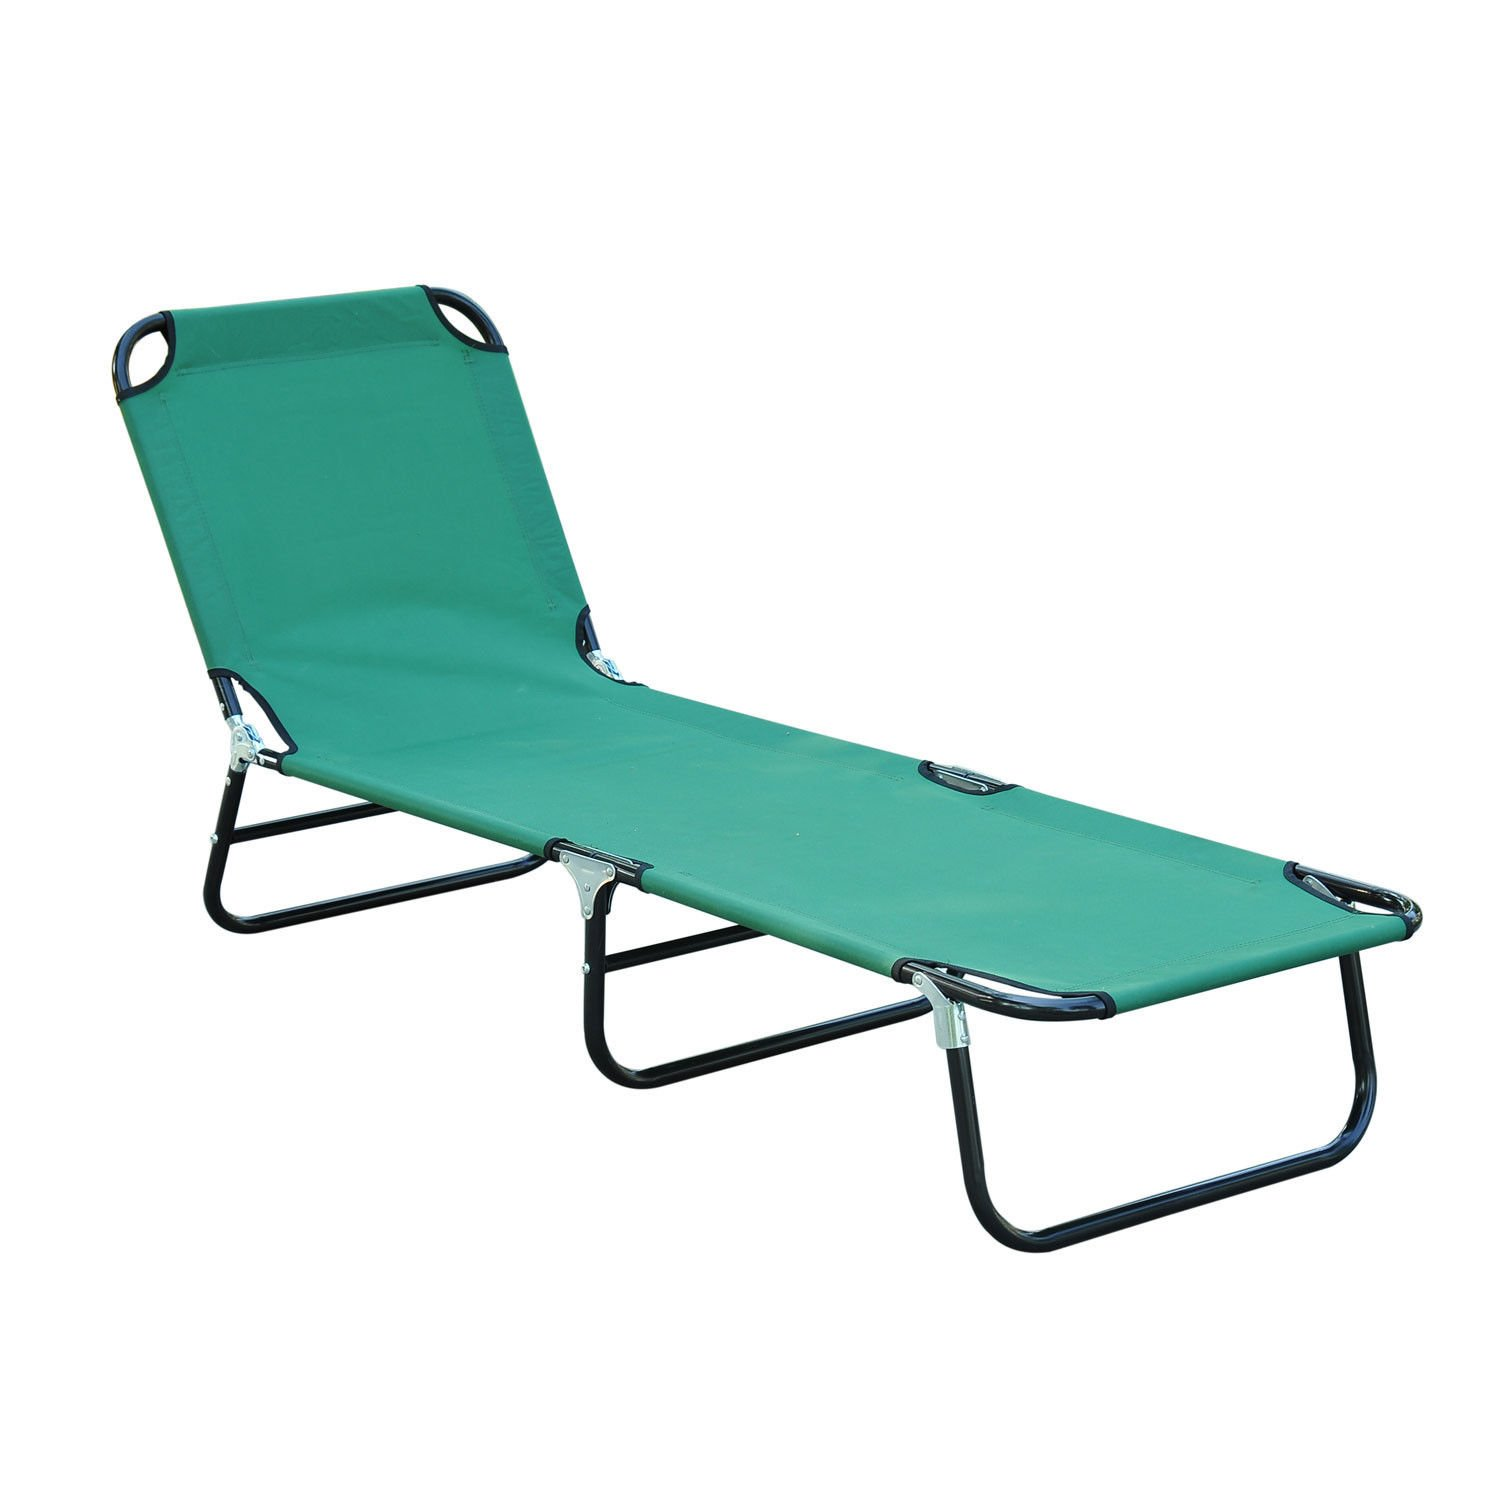 Amazon.com: Outsunny Deluxe Folding Adjustable Sun Lounger / Camping ...